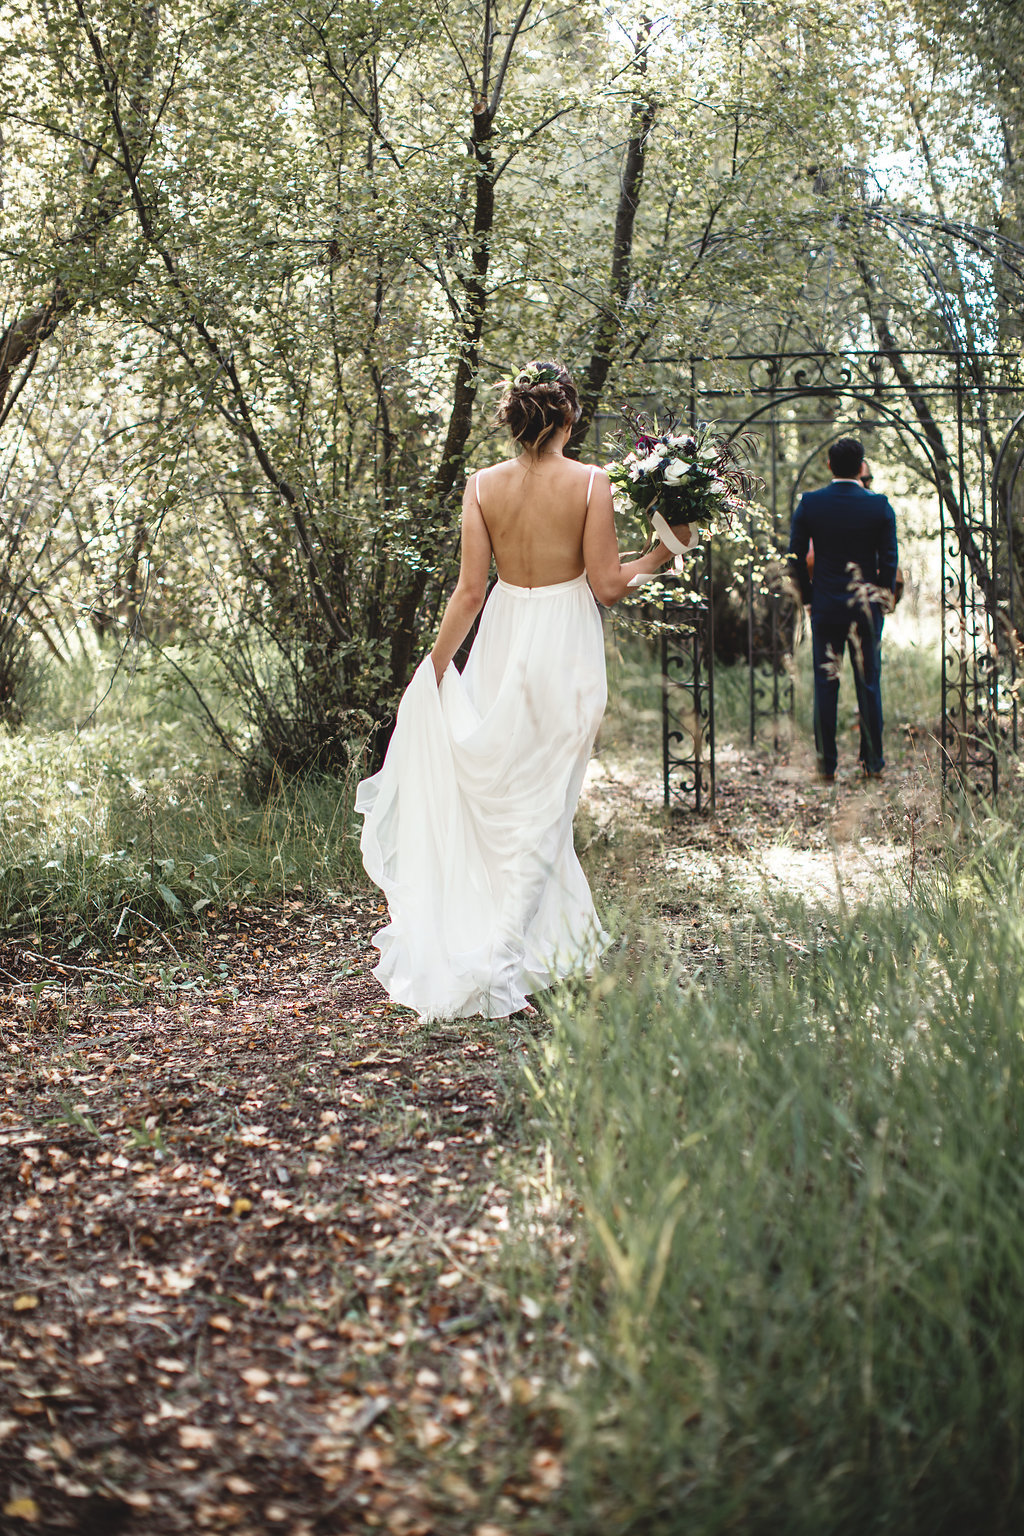 new-mexico-destination-engagement-wedding-photography-videography-adventure-063